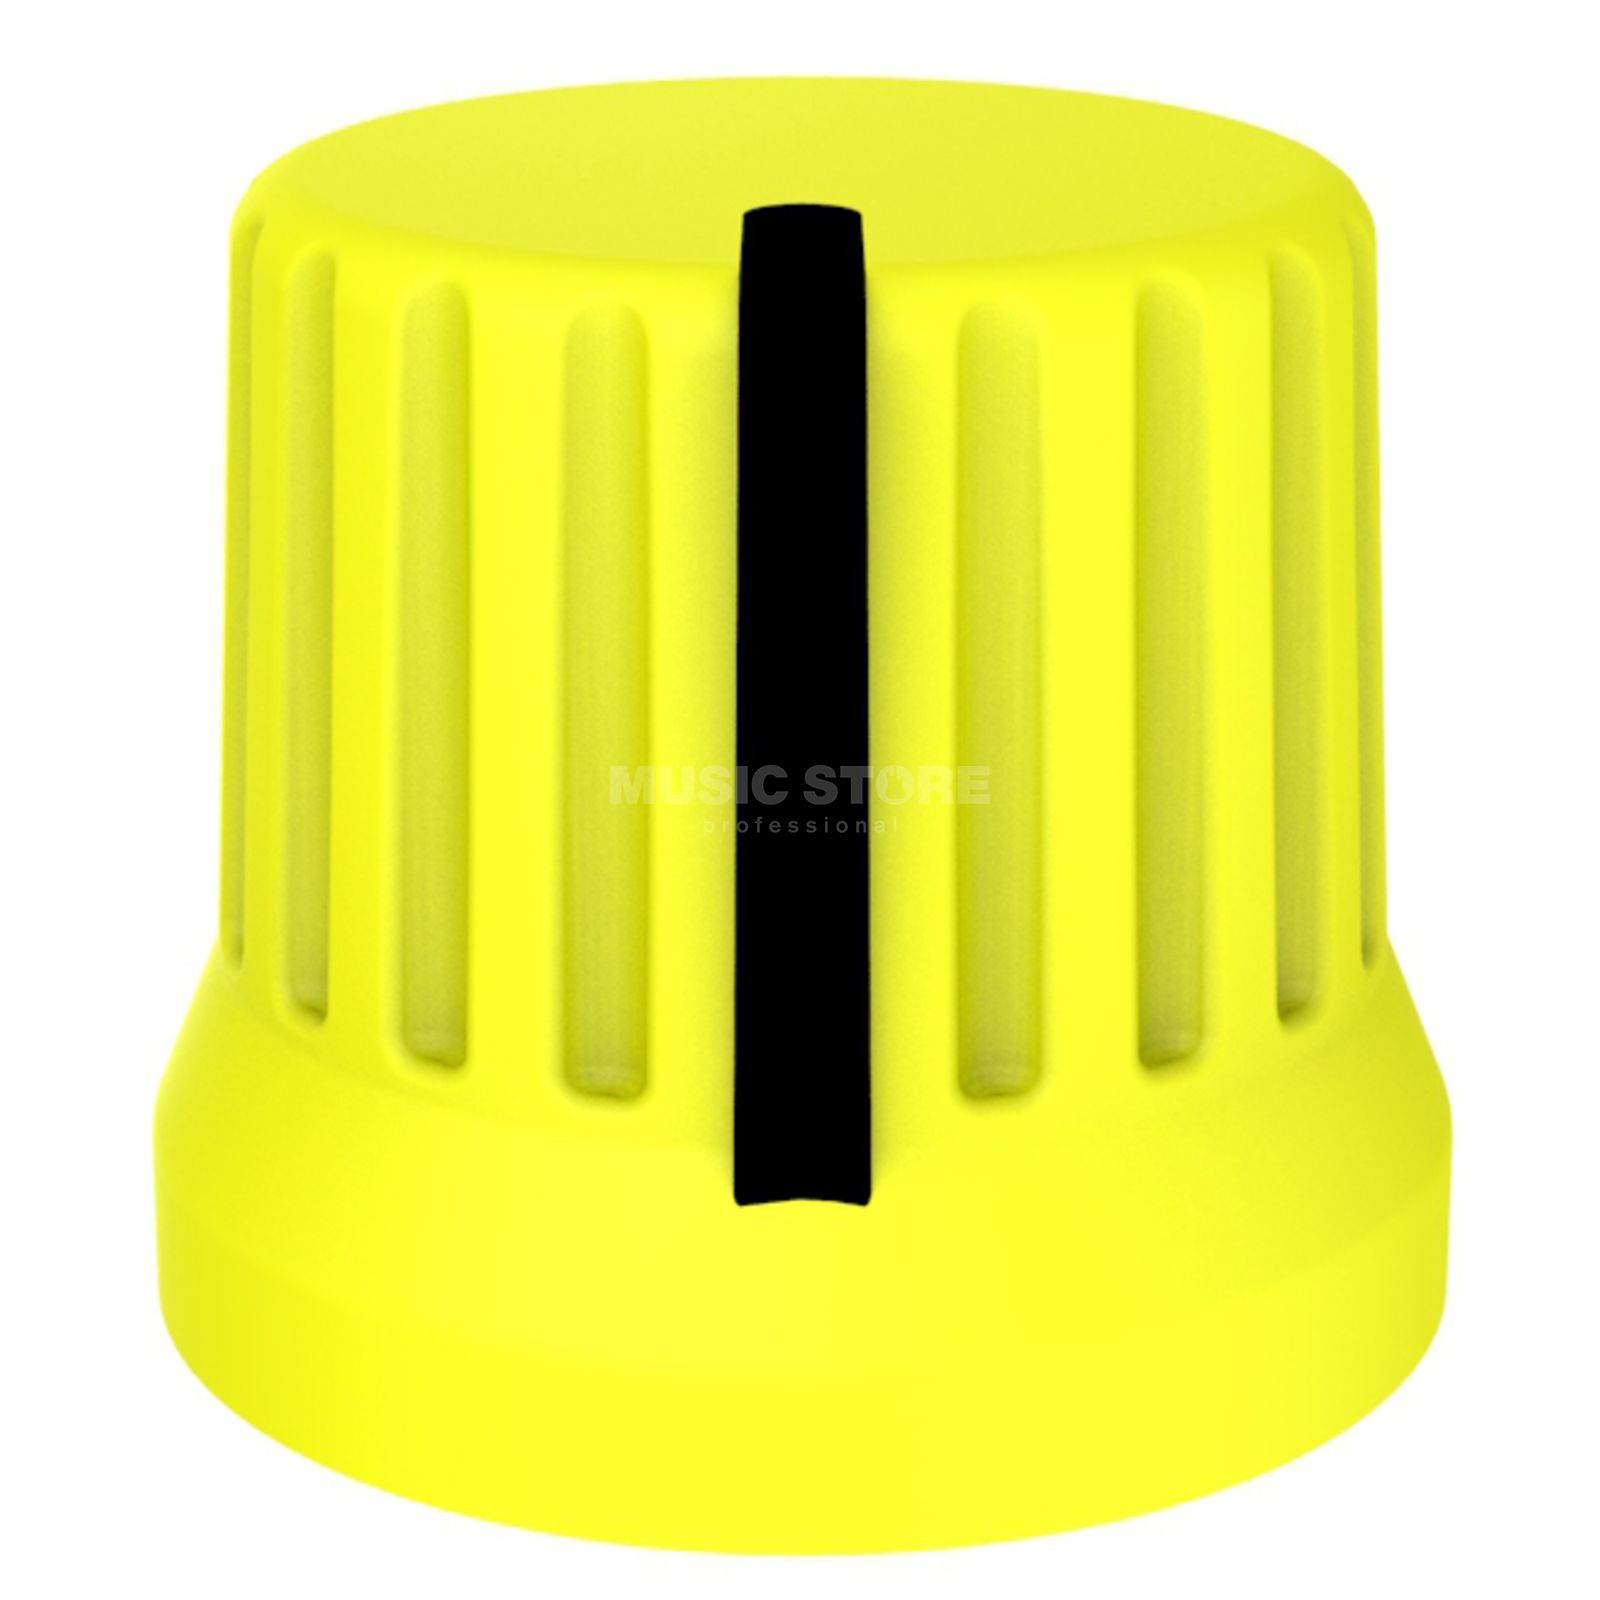 DJ TECHTOOLS Chroma Caps Fatty Knob yellow  Image du produit